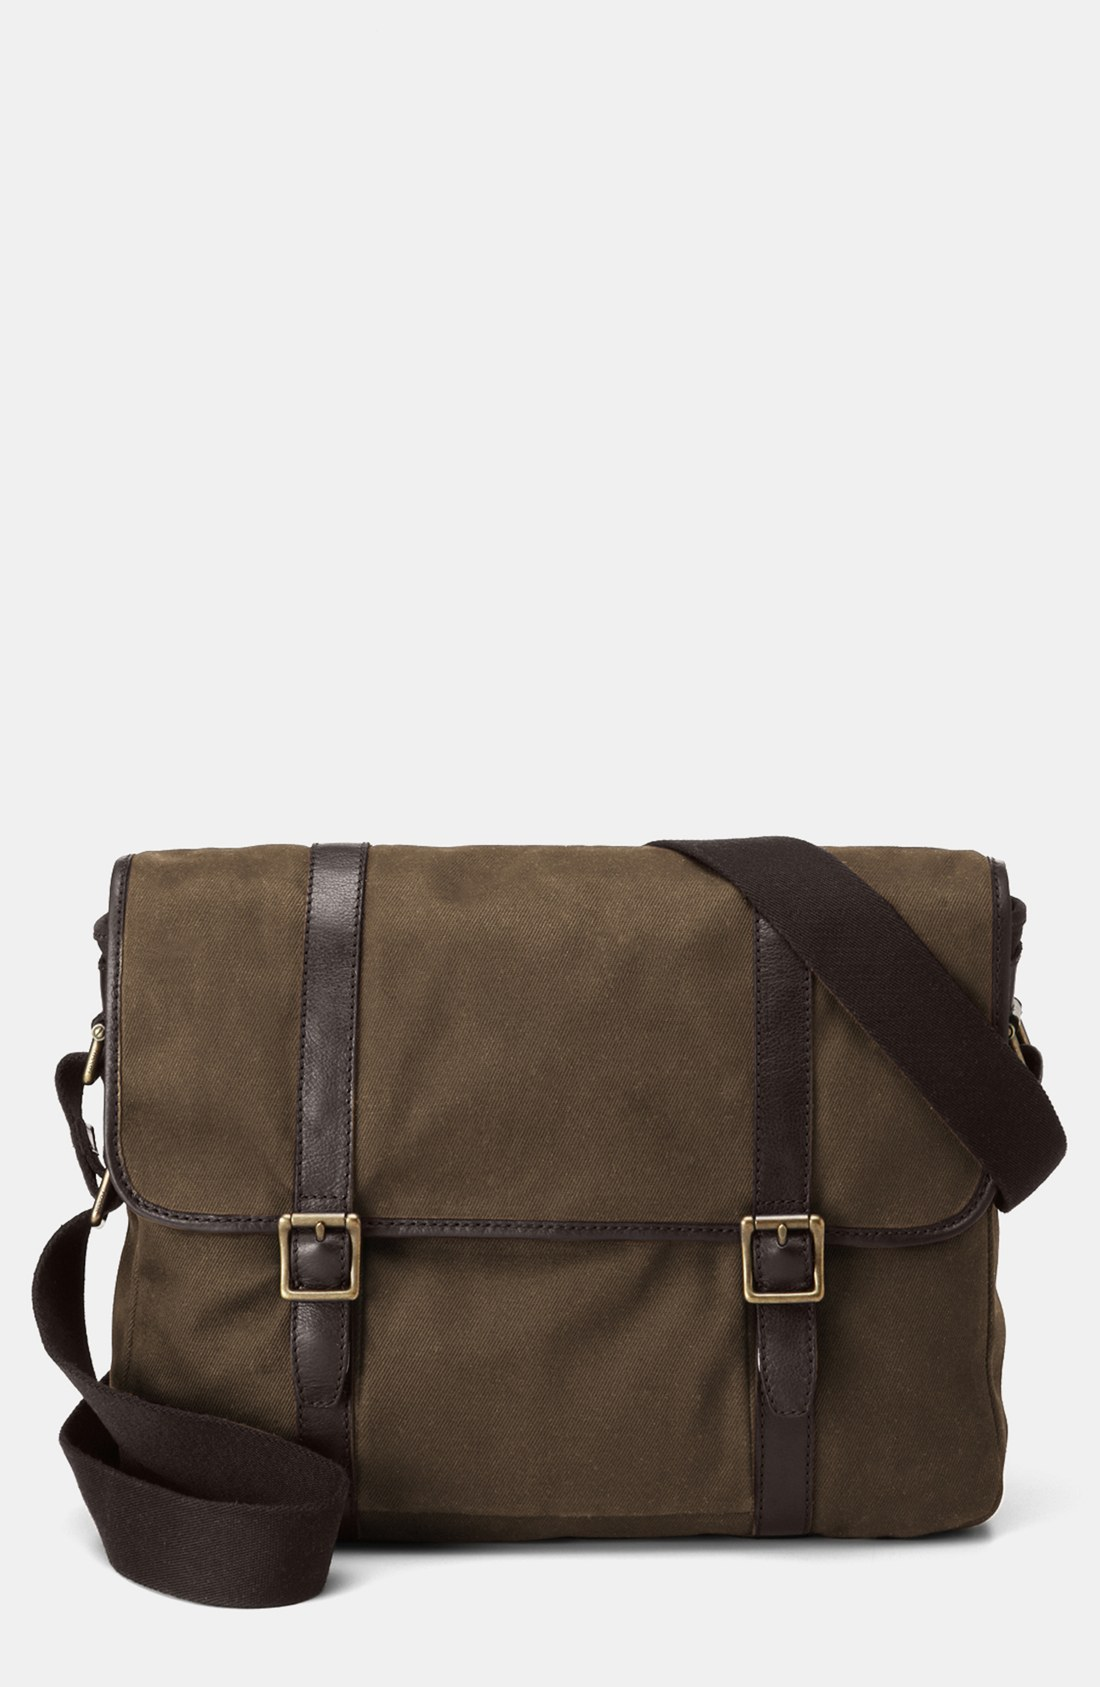 Model Samsonite Leather Laptop Briefcase $9999 At Macys Briefcases And Messenger Bags Are  A Classiclooking Bag Like This Is